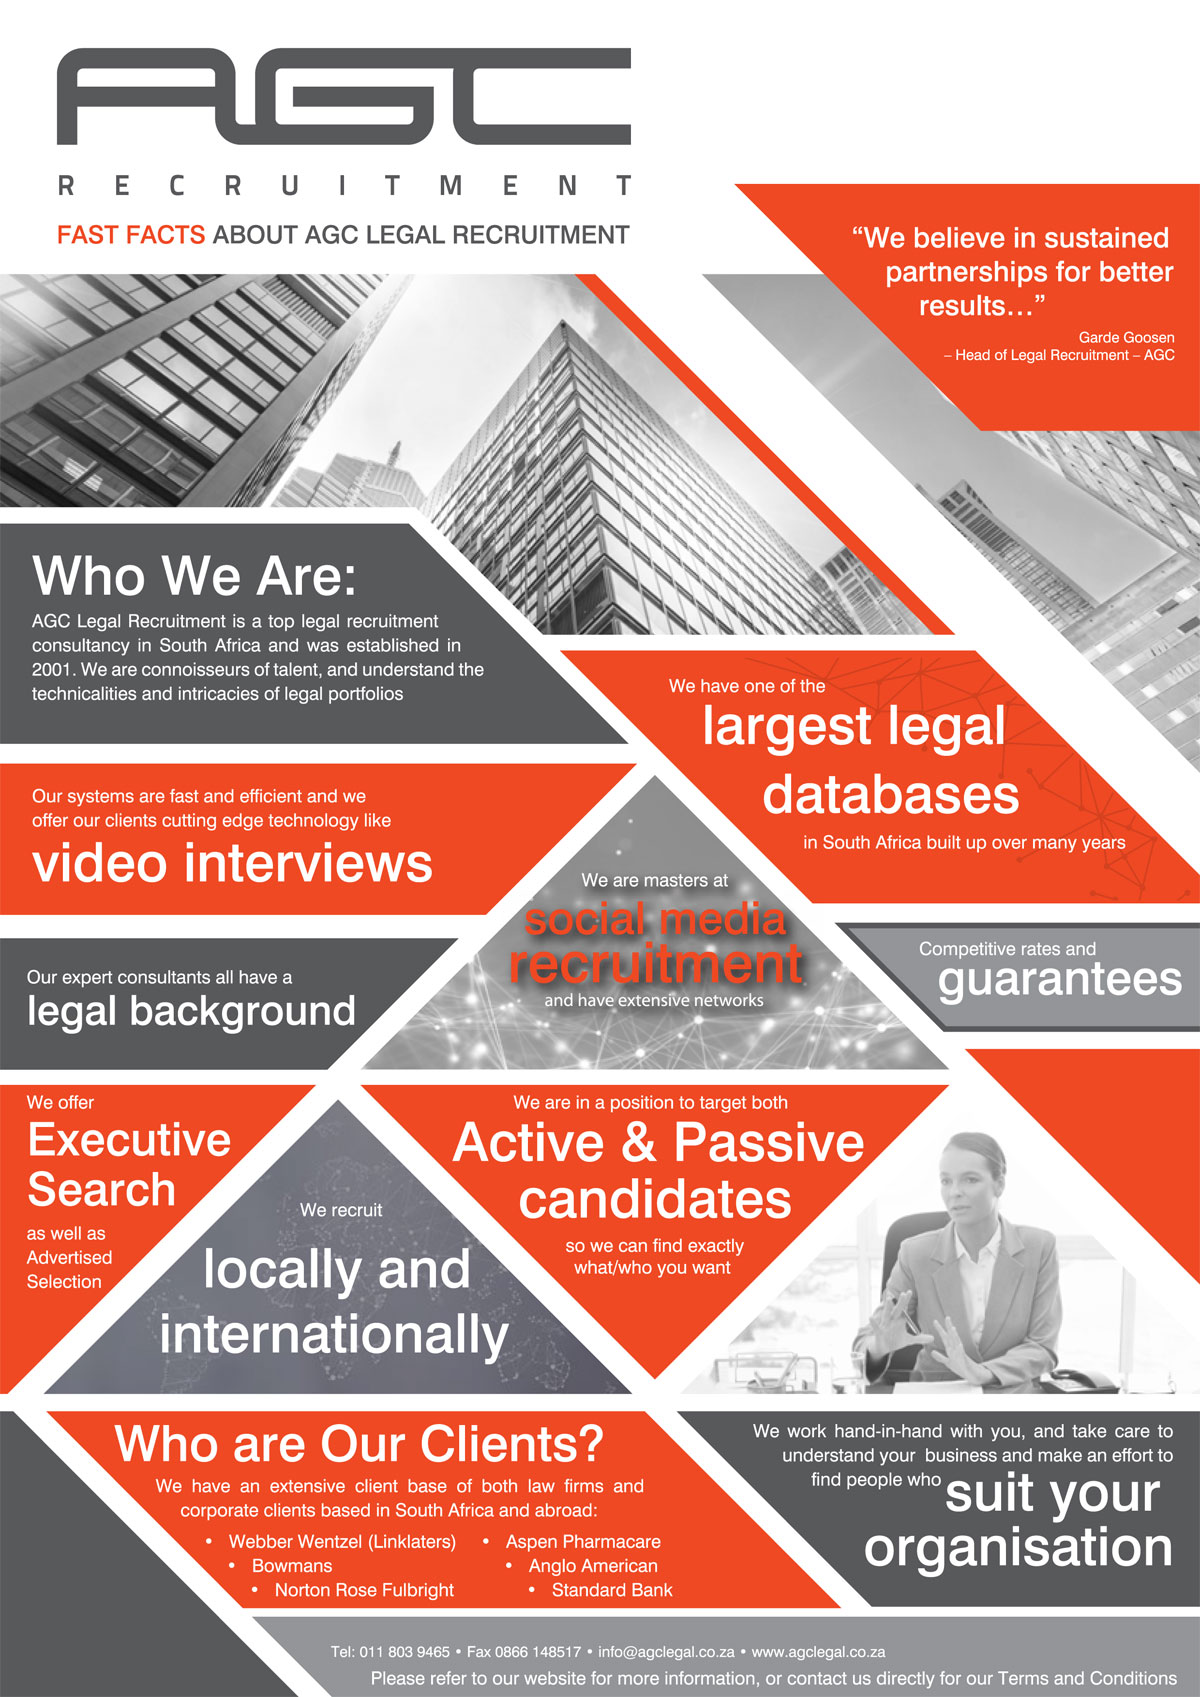 FAST-FACTS-ABOUT-AGC-LEGAL-RECRUITMENT